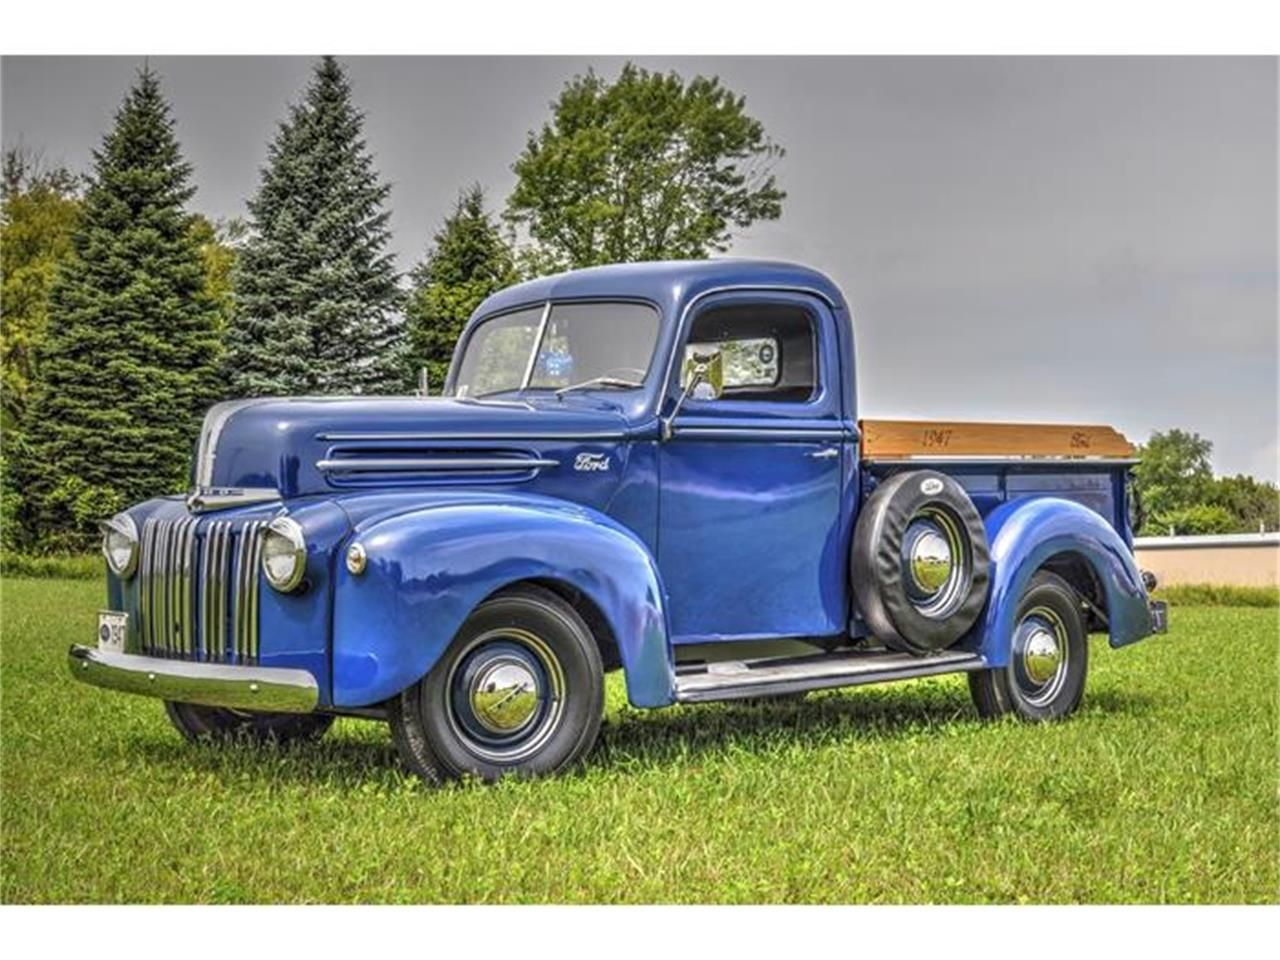 Photo 1   Just plain cool   Pinterest   Ford, Antique trucks and ...